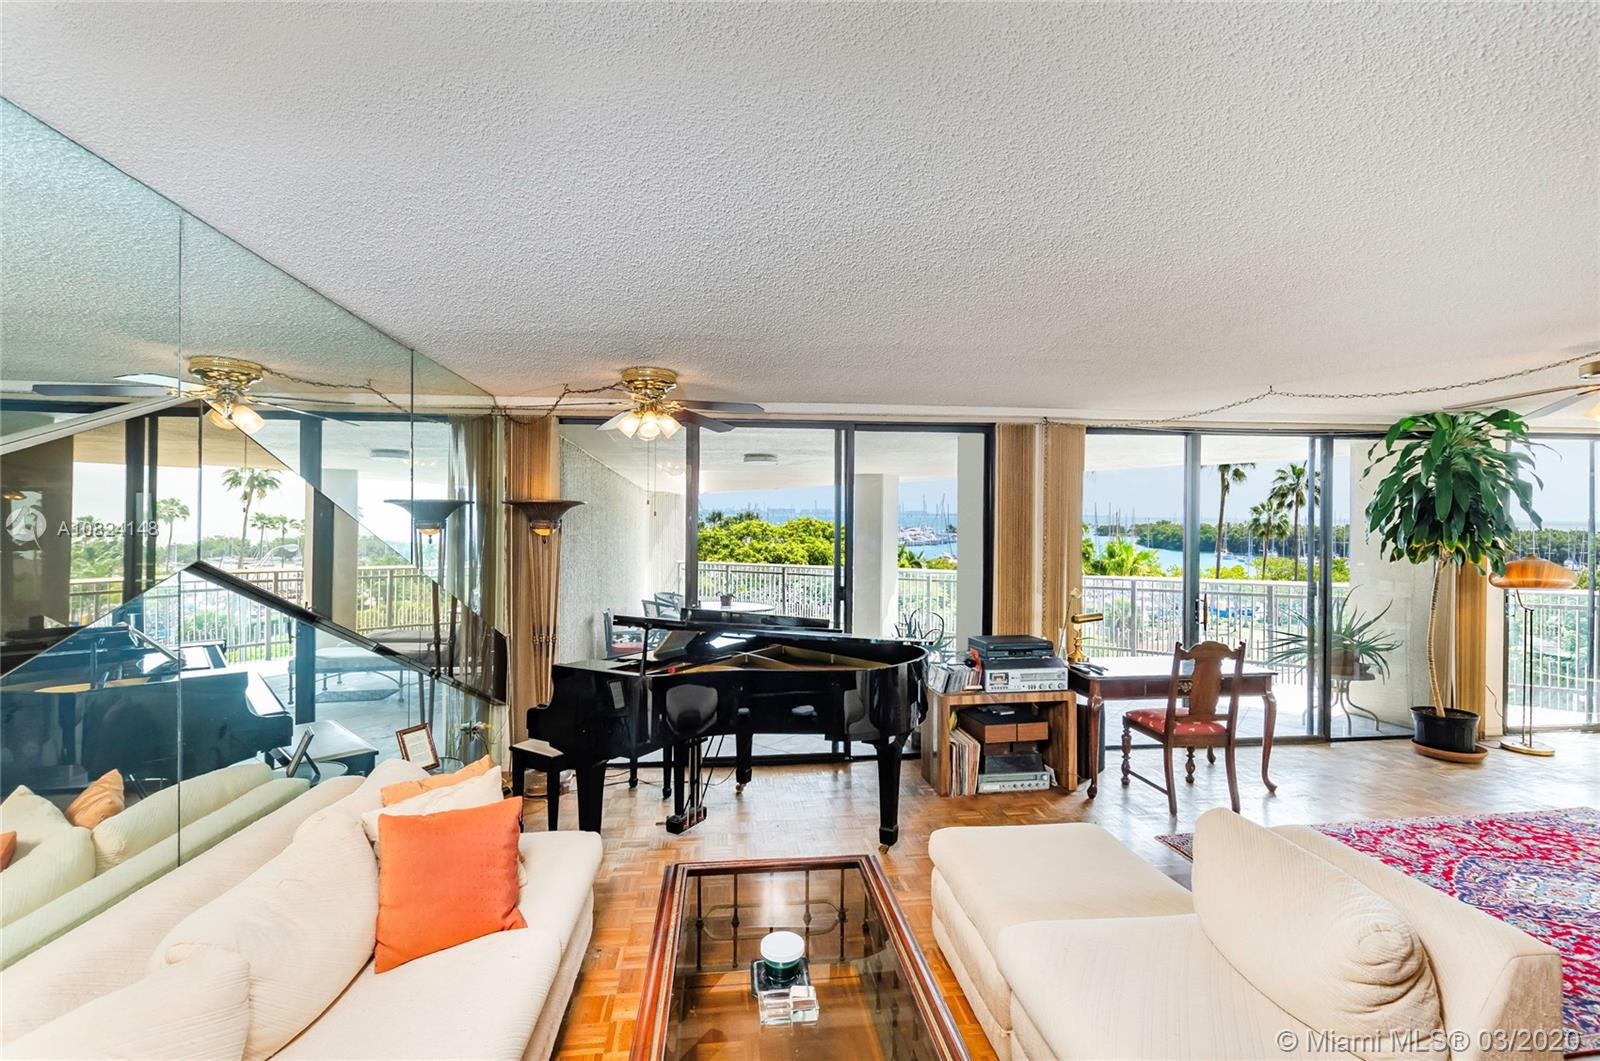 Fabulous Yacht Harbour Condominium prestige & secure building in the heart of Coconut Grove. The spacious living room and open floor plan maximize space. The floor to ceiling sliding glass doors and windows offering natural light and stunning views that gives the unit a bright throughout. Panoramic Biscayne Bay views with totally renovated wrap-around terrace. This originally 3 beds, 2 baths condo has been converted into a 2/2 in order to take full advantage of the captivating views of the Coconut Grove Marina, Sailboats, Biscayne Bay & Key Biscayne. This 2, 387+- SF Unit is walking distance to markets, theater and parks. This location invites to the bright and spectacular lifestyle of charming Coconut Grove: Sailing and yachting, outdoor dining, strolling under the hammocks and nightlife